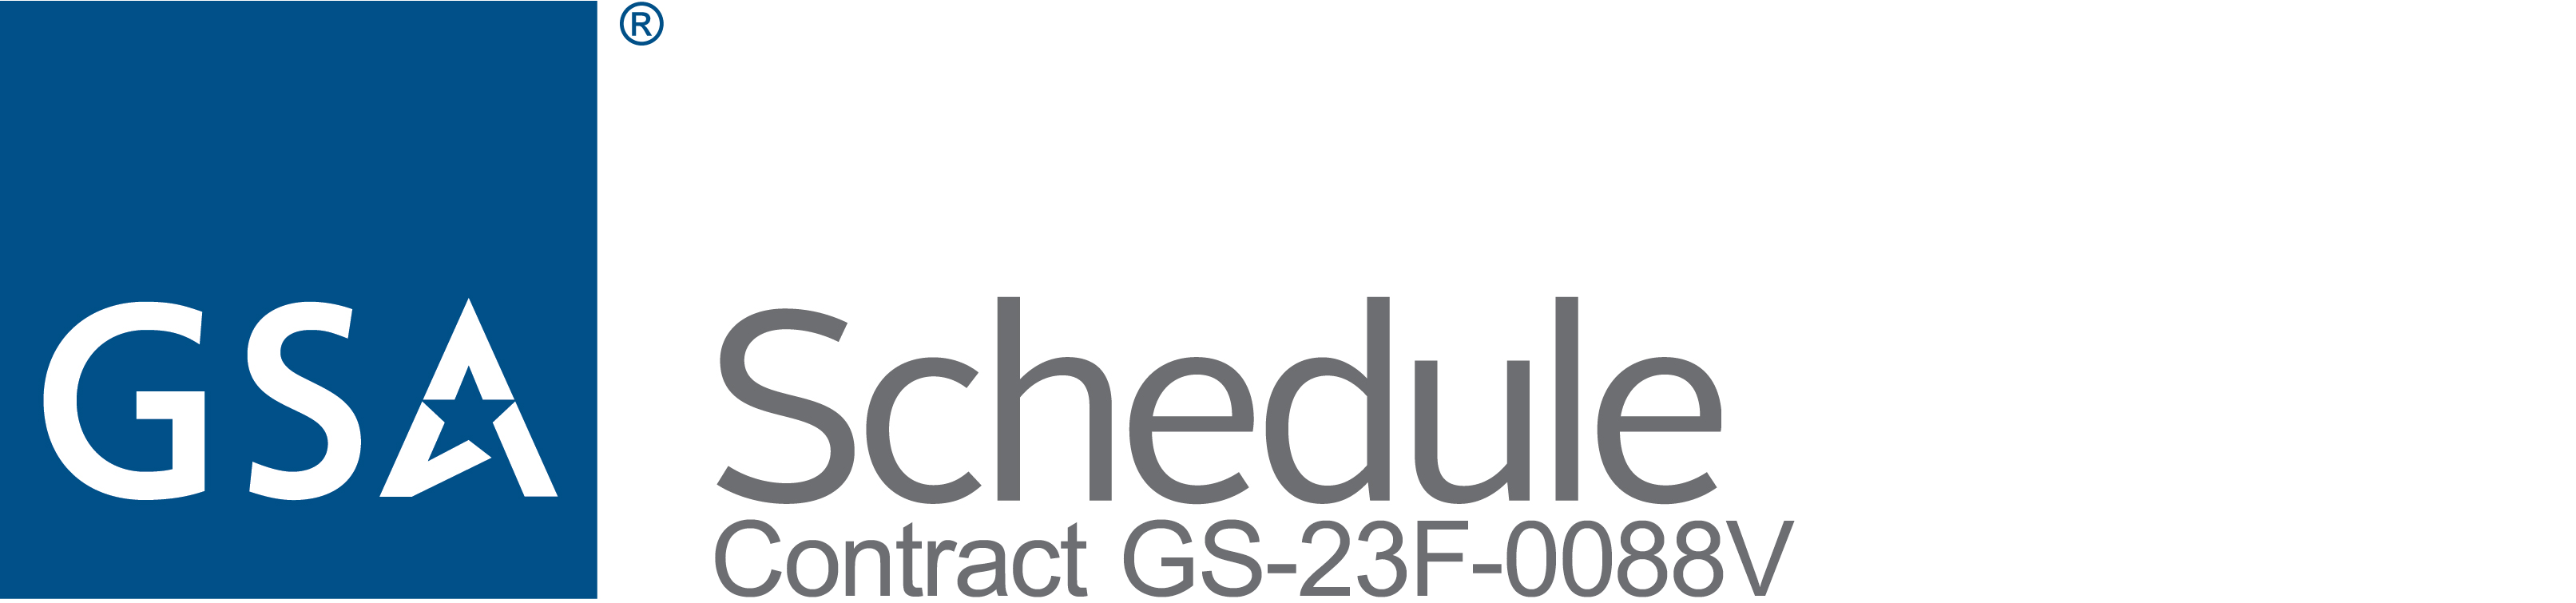 GSA Schedule Contract GS-23F-0088V